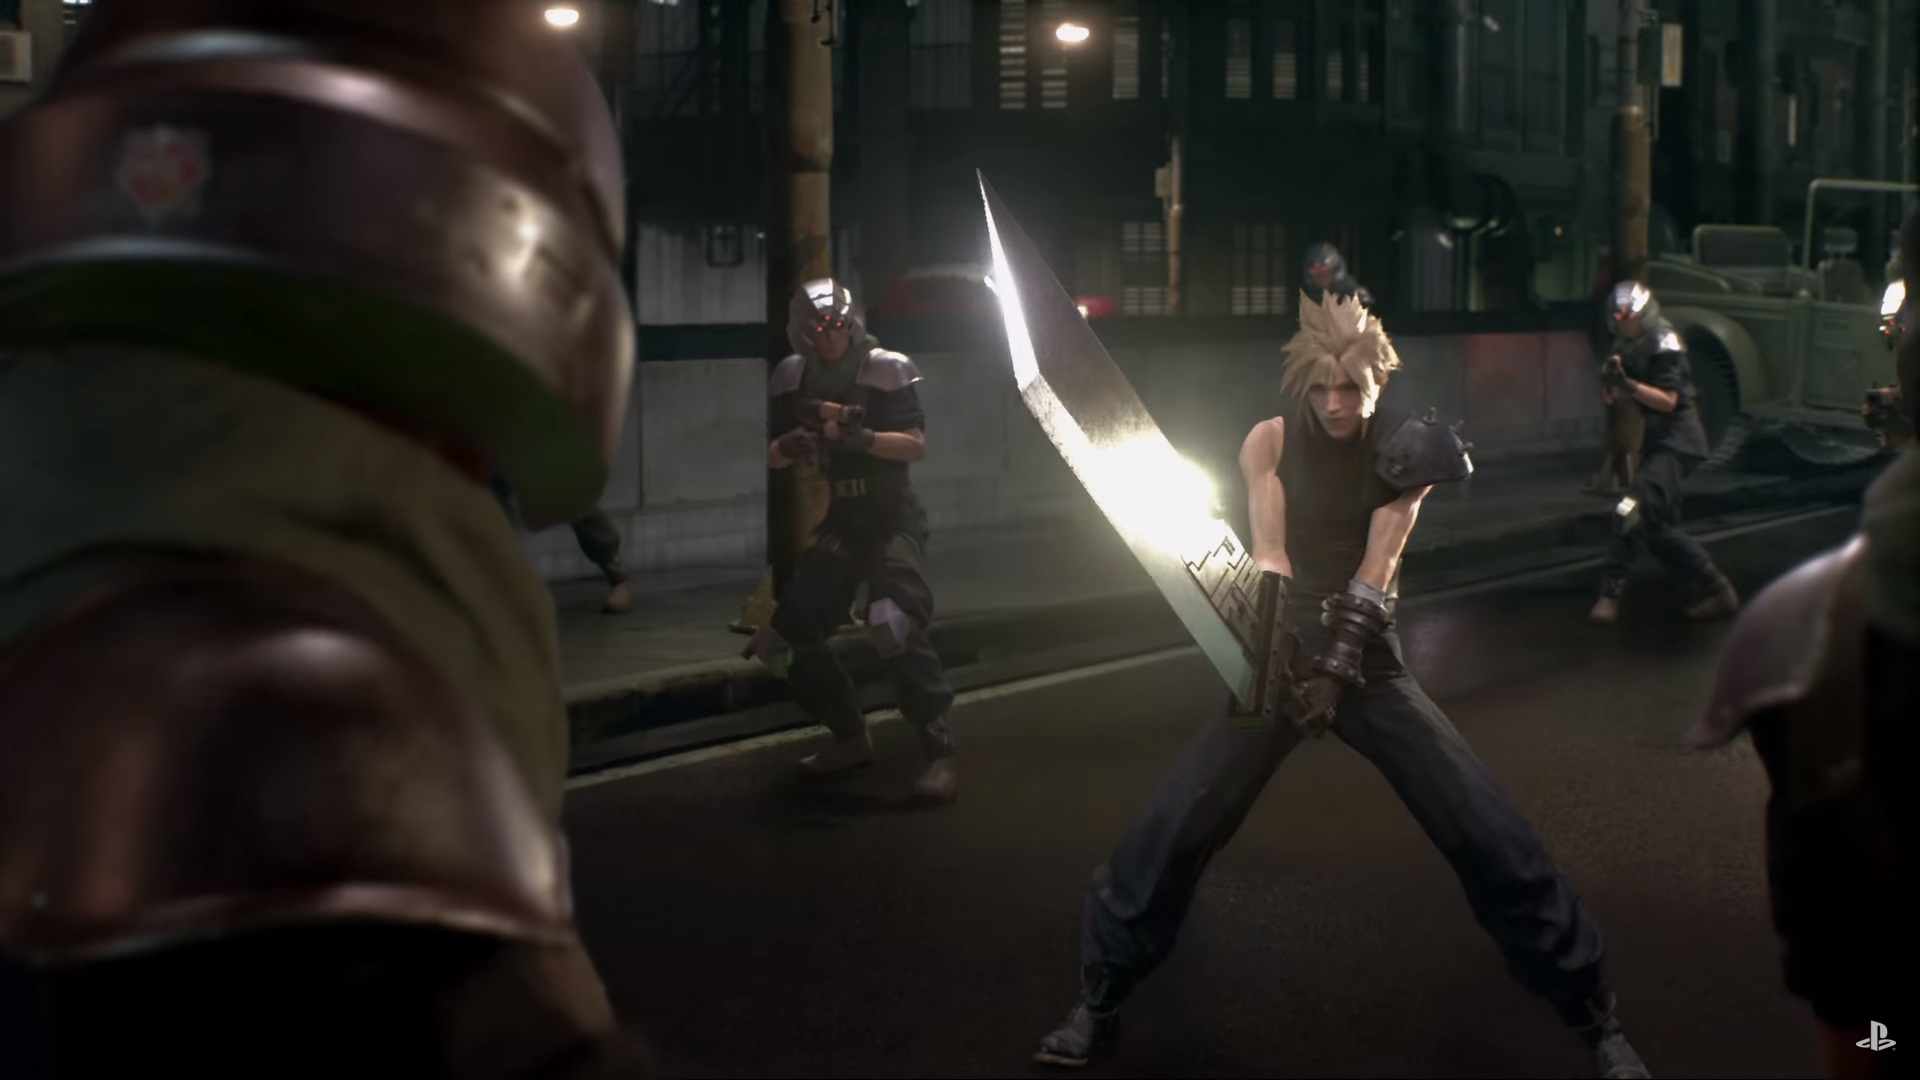 Update Final Fantasy Vii Remake New Development Pics